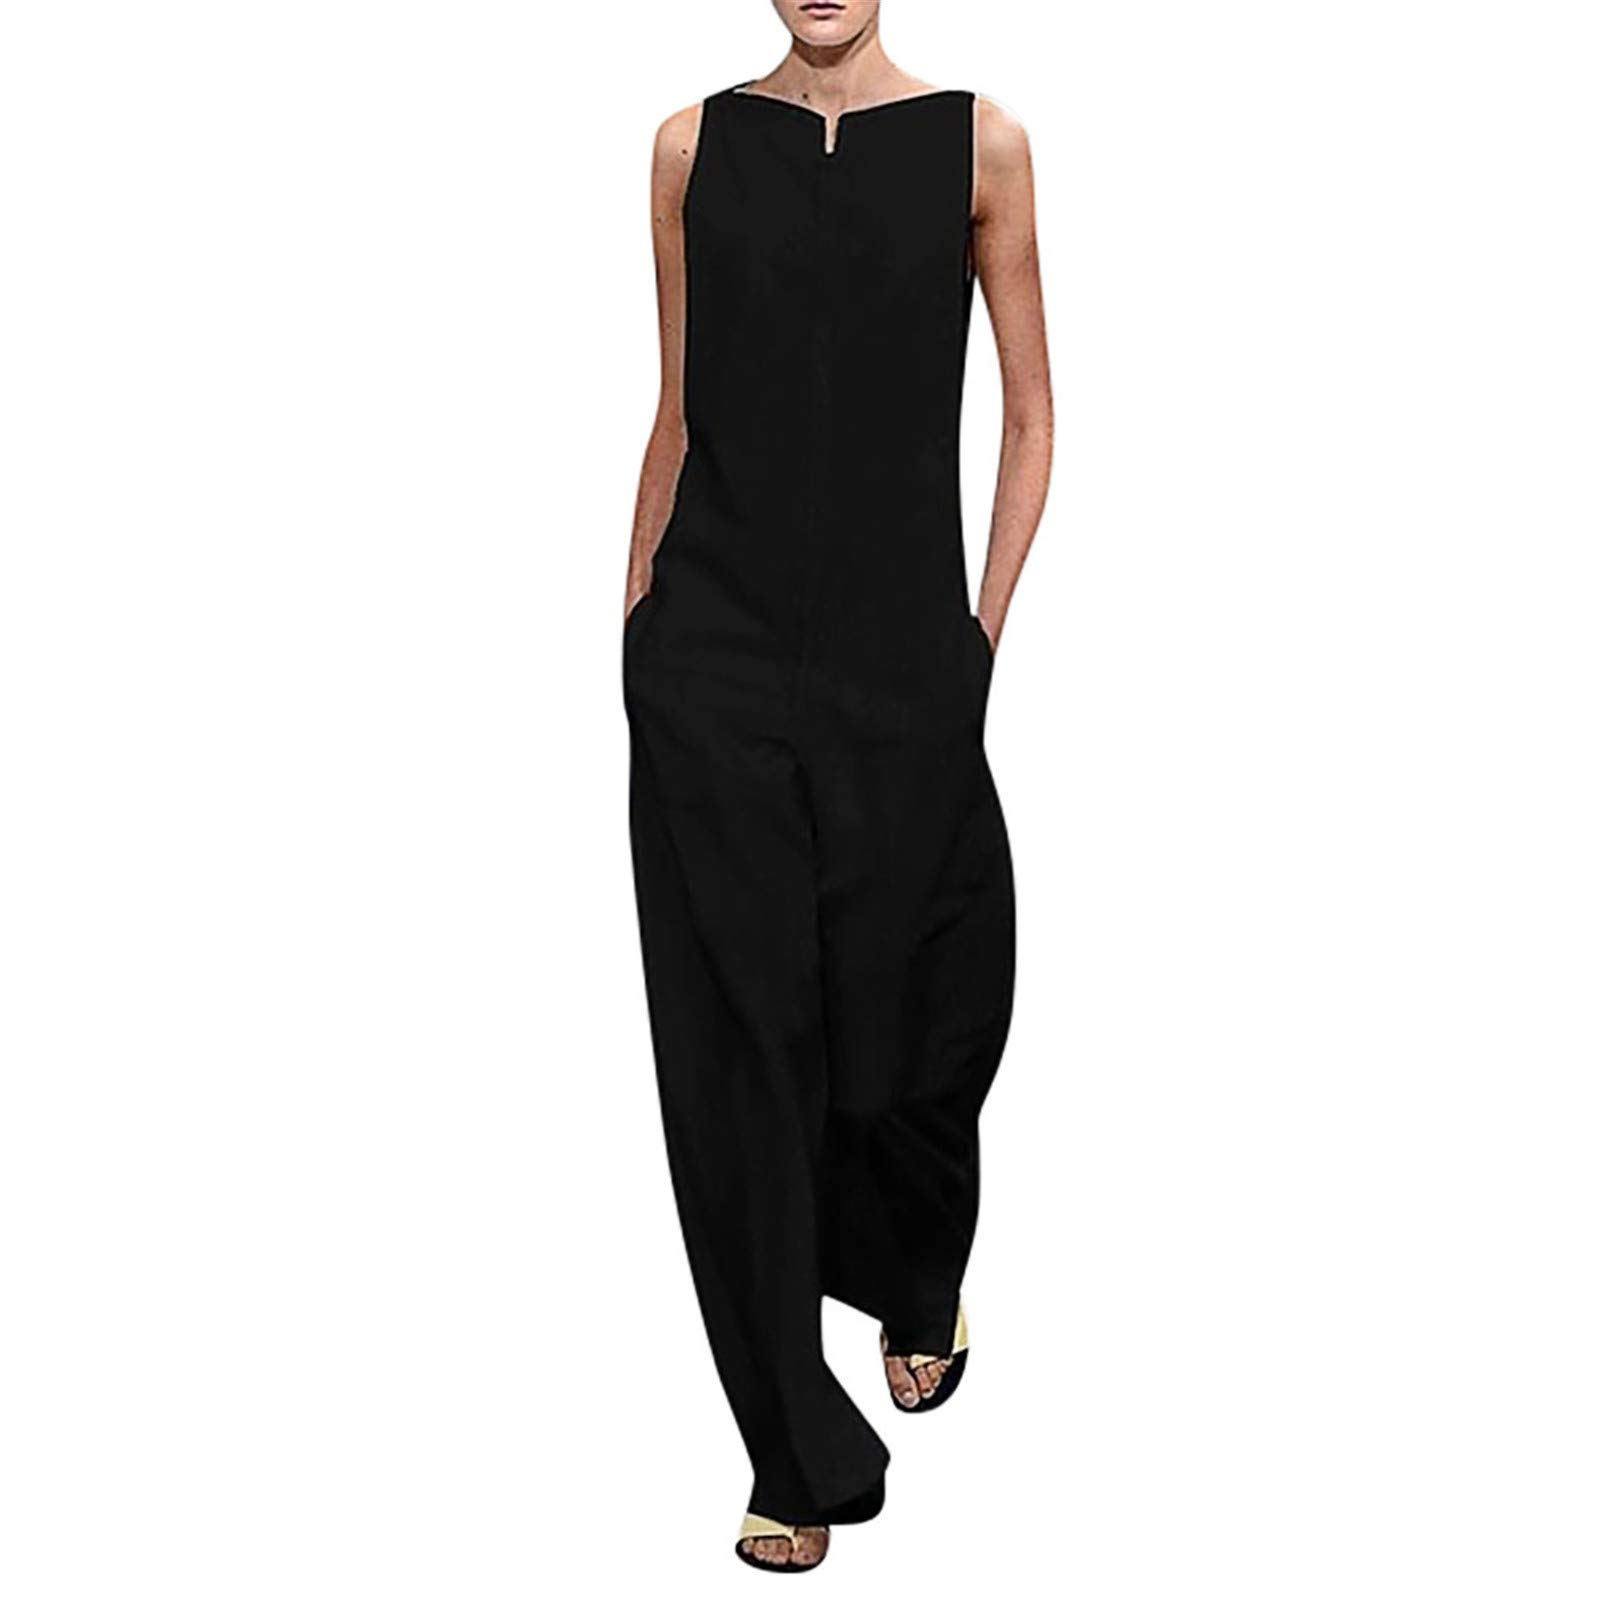 Thenxin Ladies Fashion Cotton Loose Jumpsuits Solid Color Sleeveless Long Pockets Playsuit Rompers(Black,M)